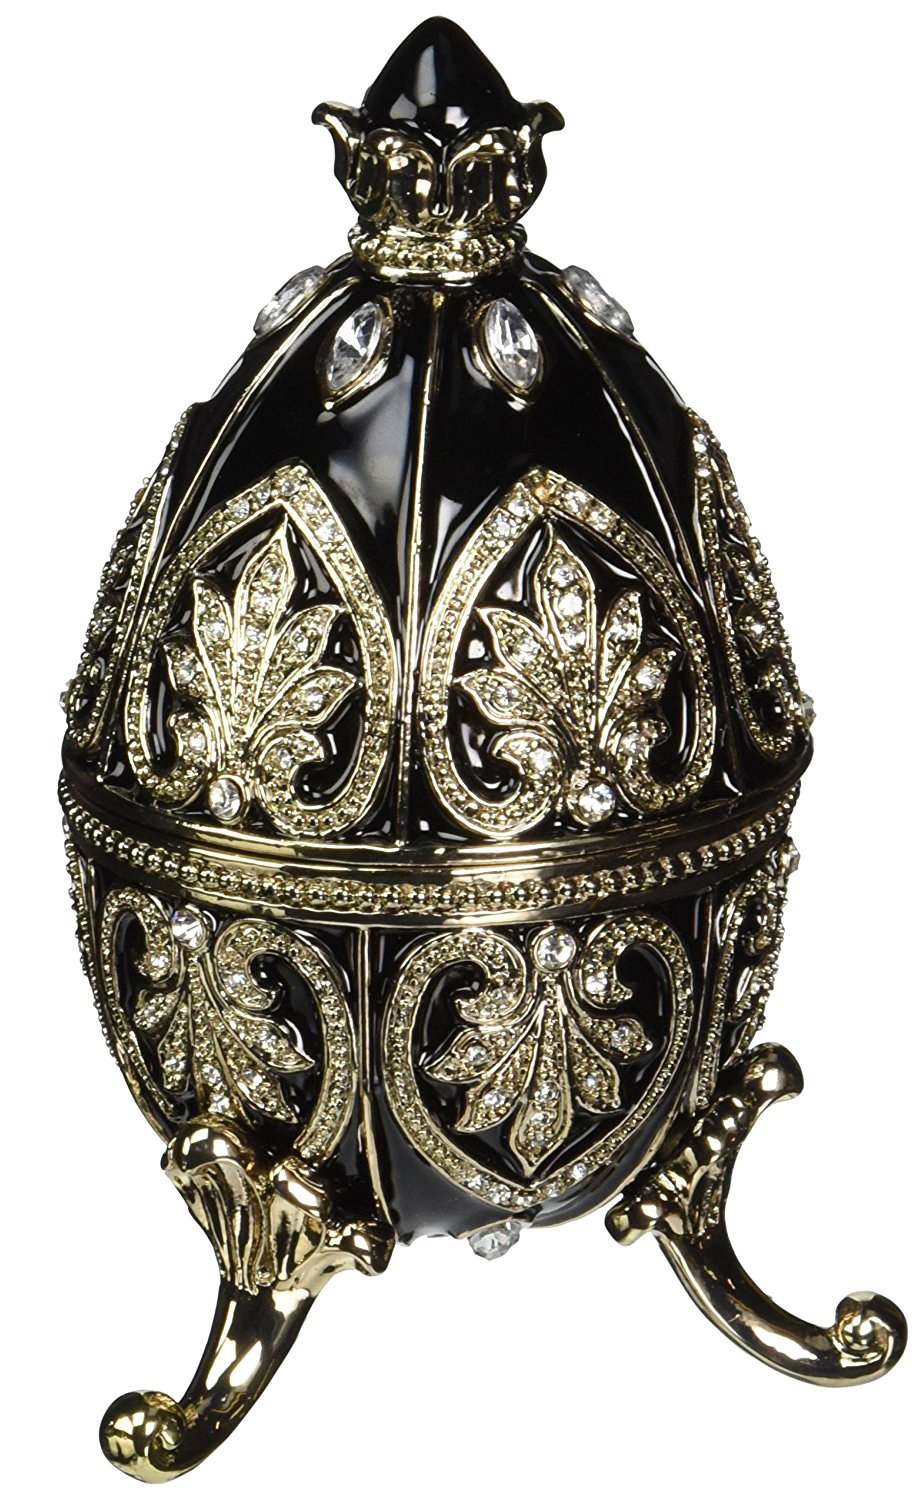 Beautiful Black Enamel Gold Floral Pattern Adorned Faberge Egg Jewelry Box